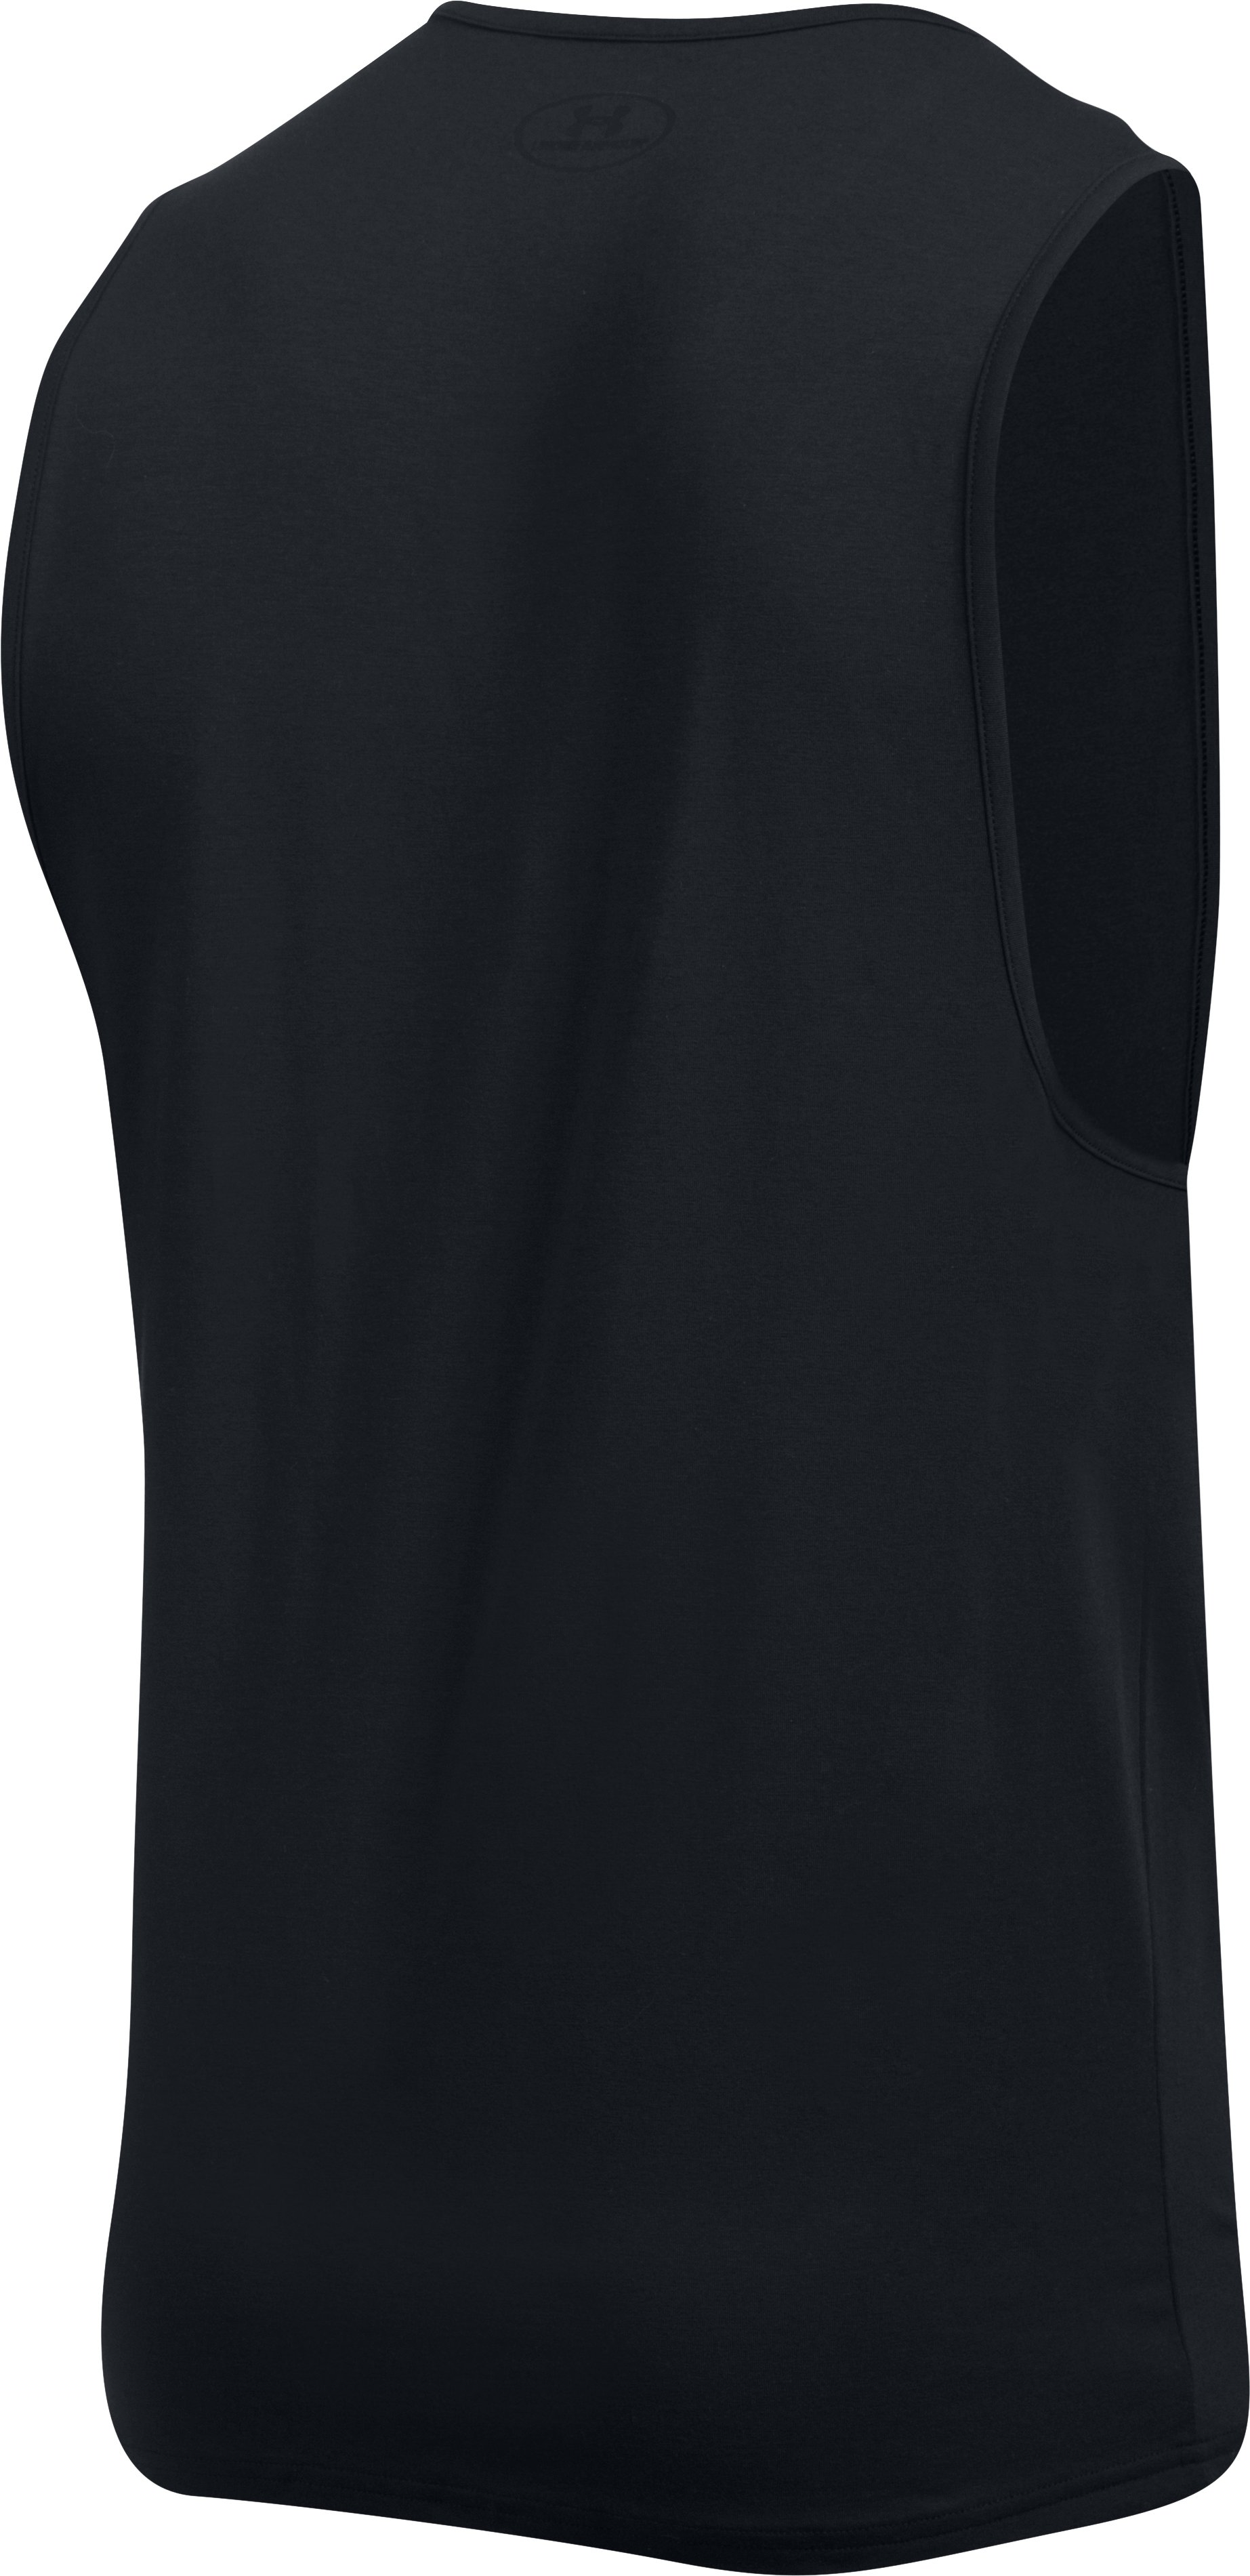 Men's Charged Cotton® Tank Undershirt – 2-Pack, Black , undefined